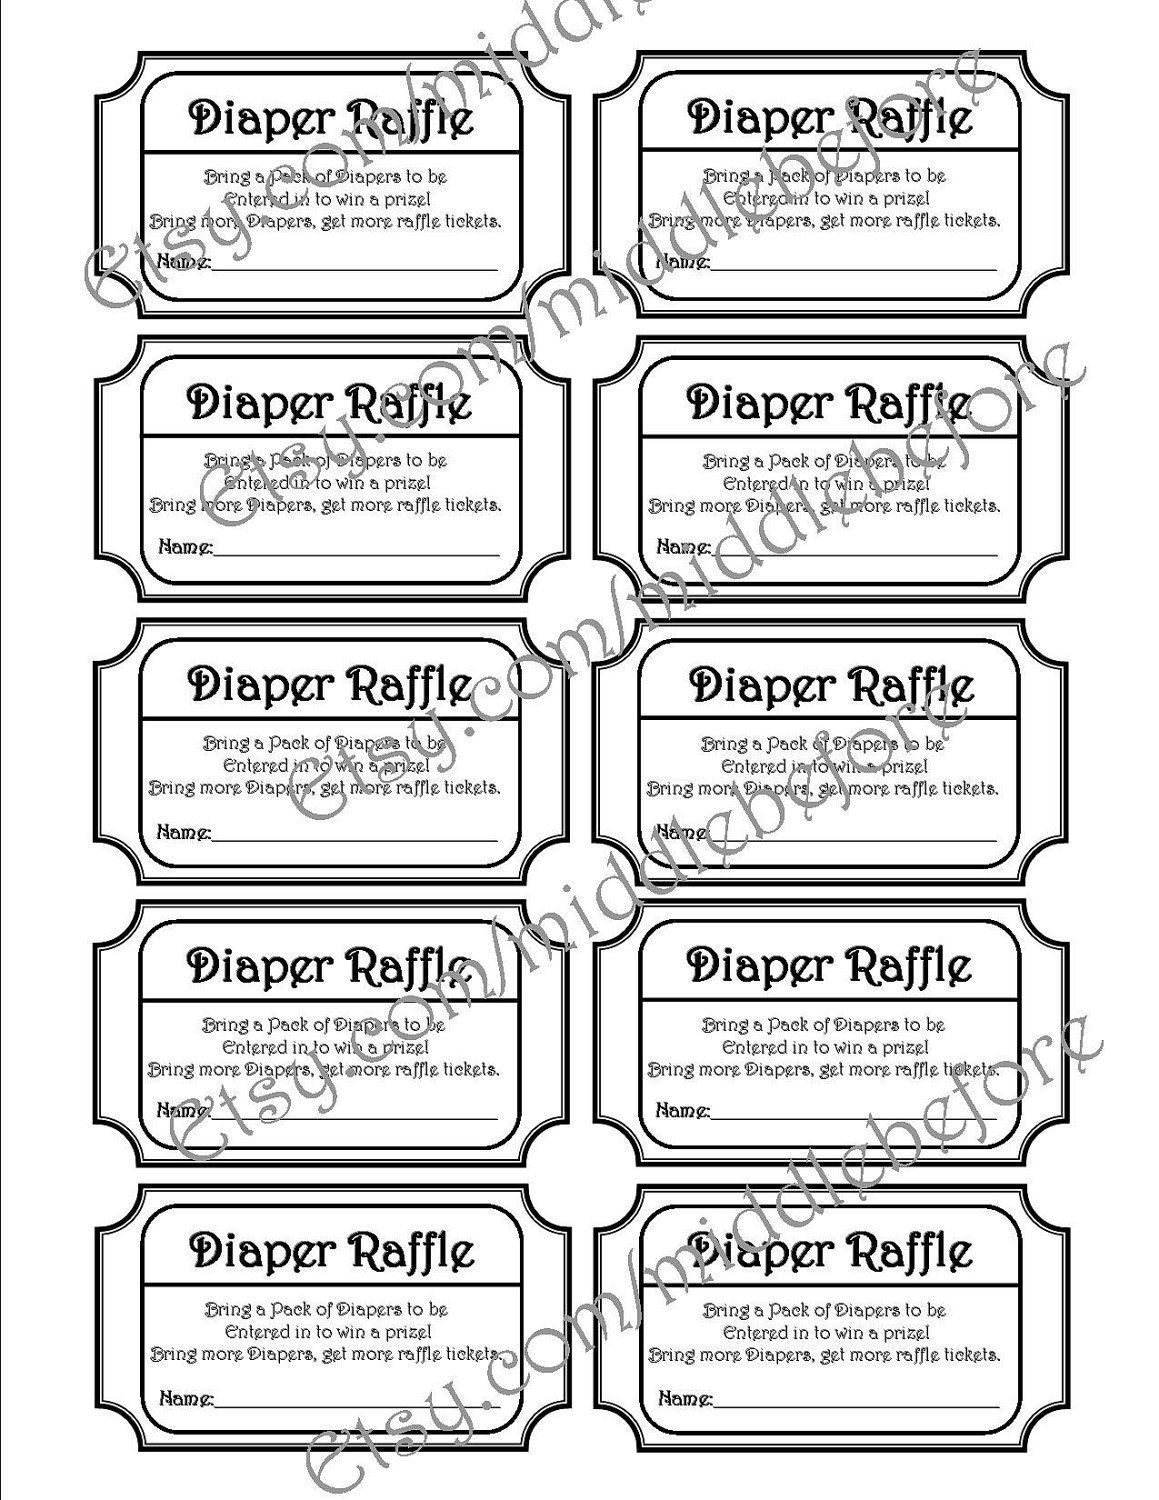 001 Dreaded Diaper Raffle Ticket Template High Resolution  Boy Free Printable Print Black And WhiteFull